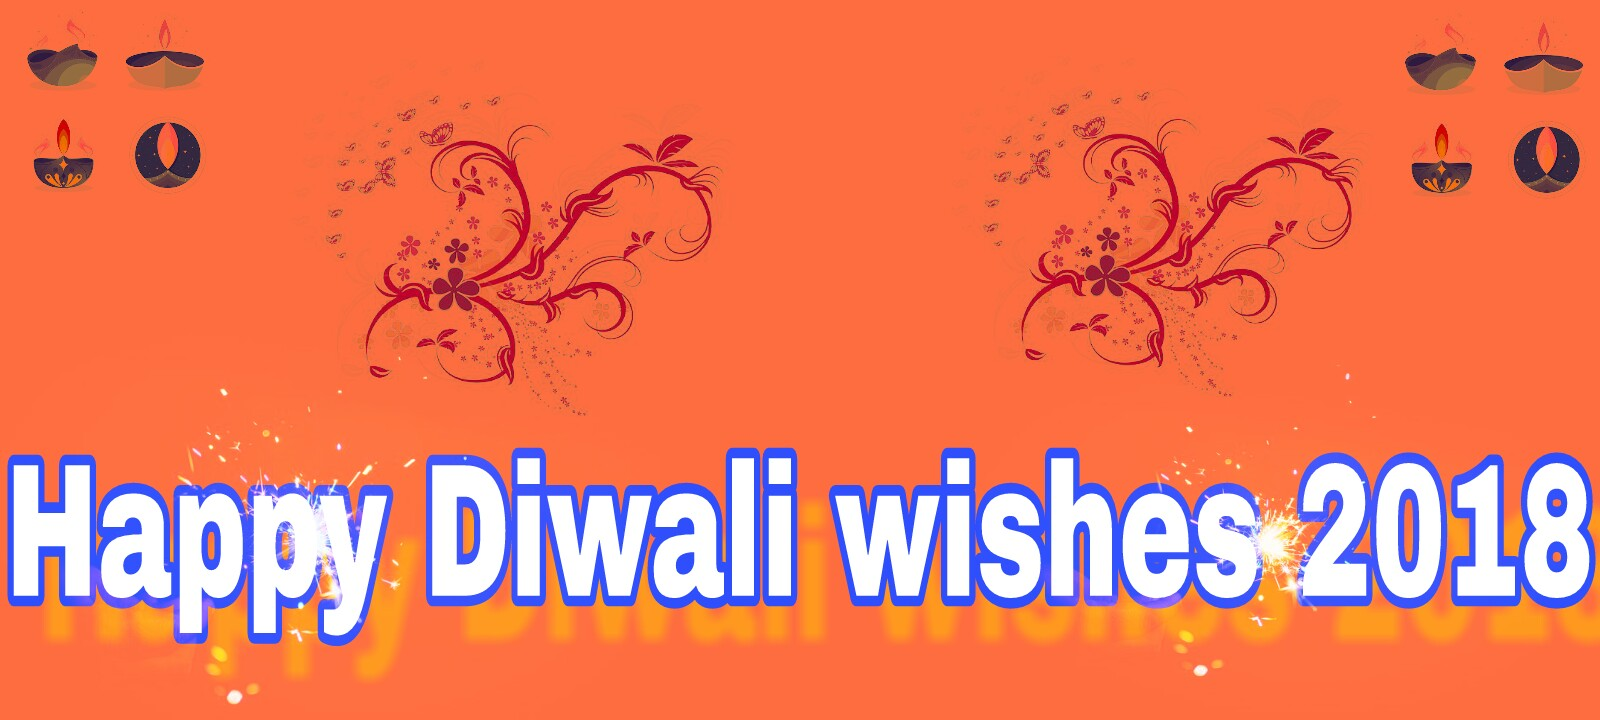 happy diwali wishes 2018 quotes, SMS, Messages, images, shayari